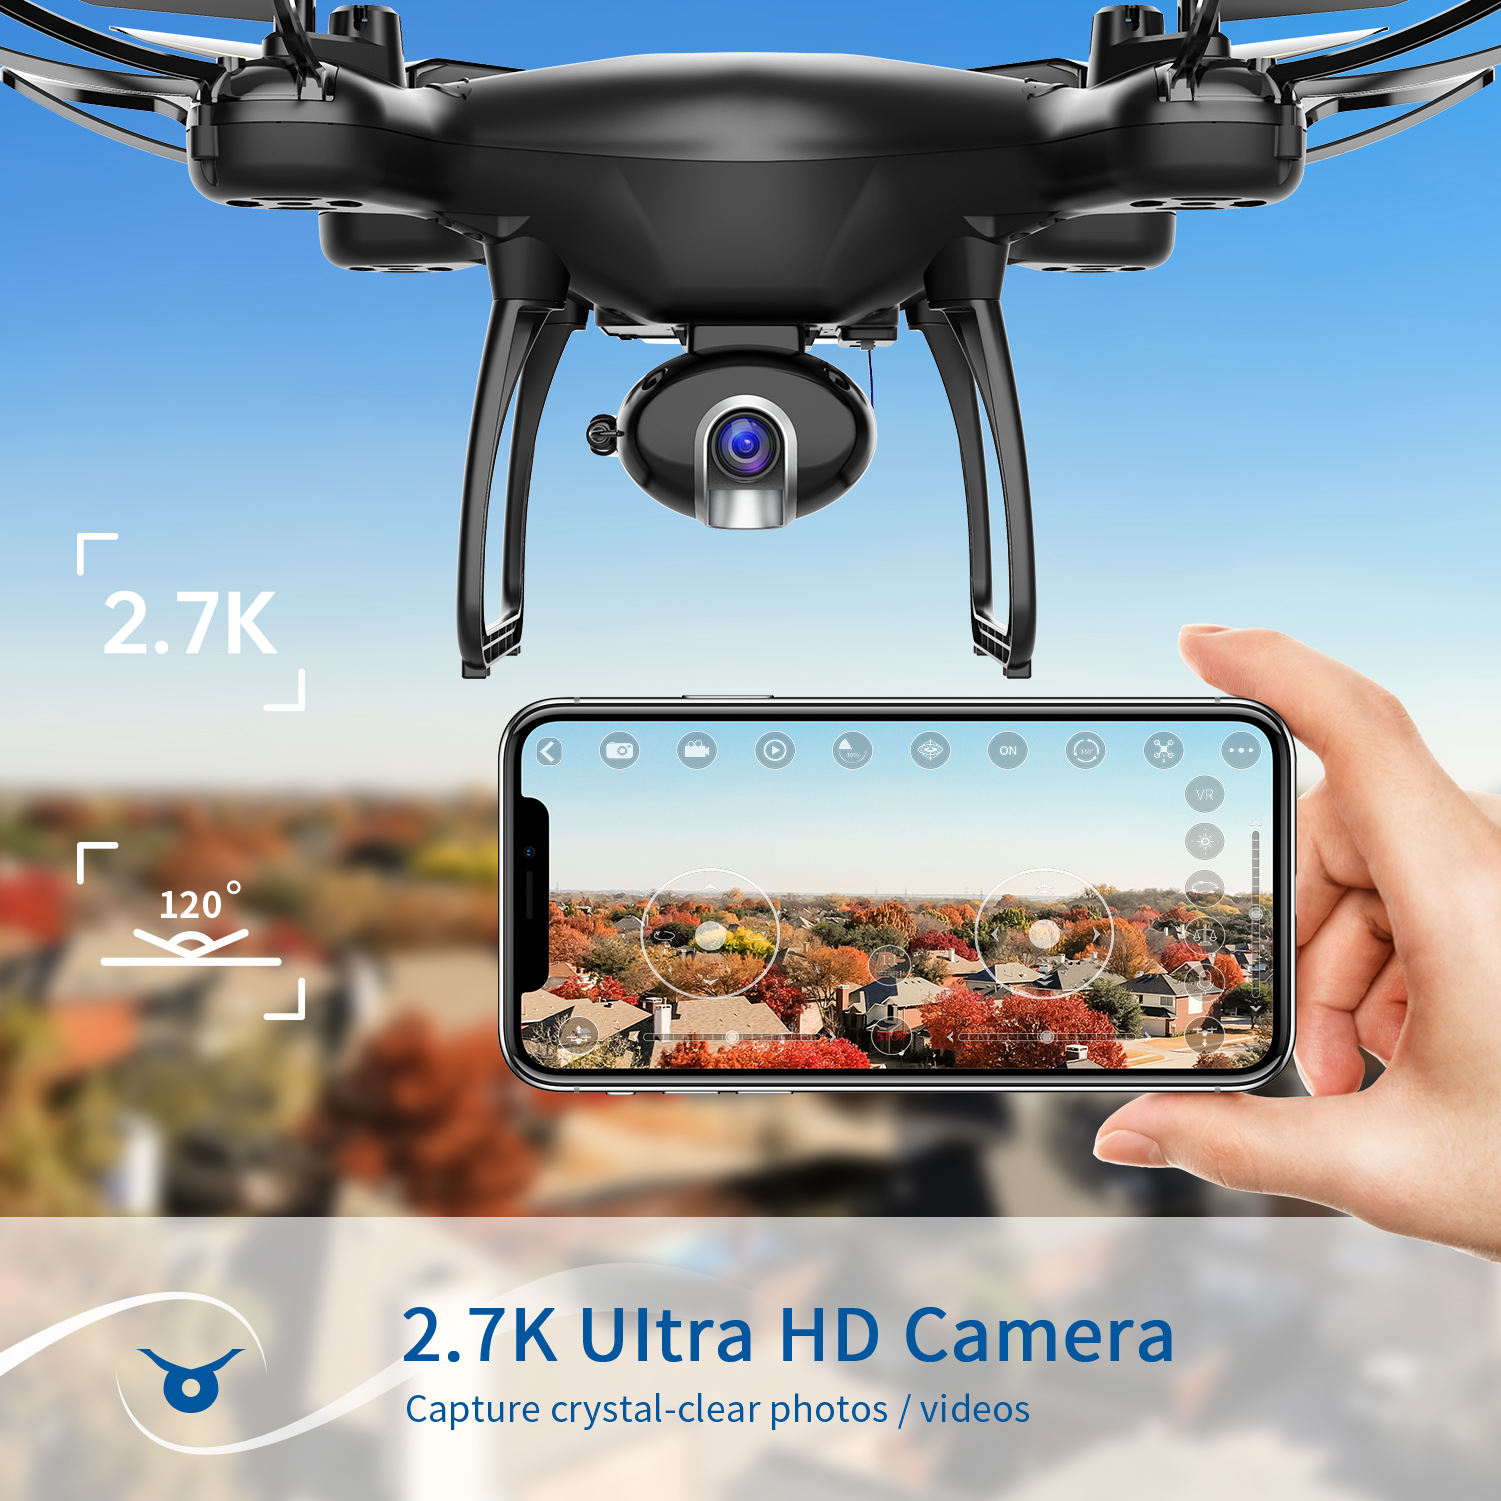 SNAPTAIN SP650 Drone 2-Axis Gimbal Camera 2K HD Video Camera Drone Voice Gesture Control Wide Angle Foldable Quadcopter RC dron 2